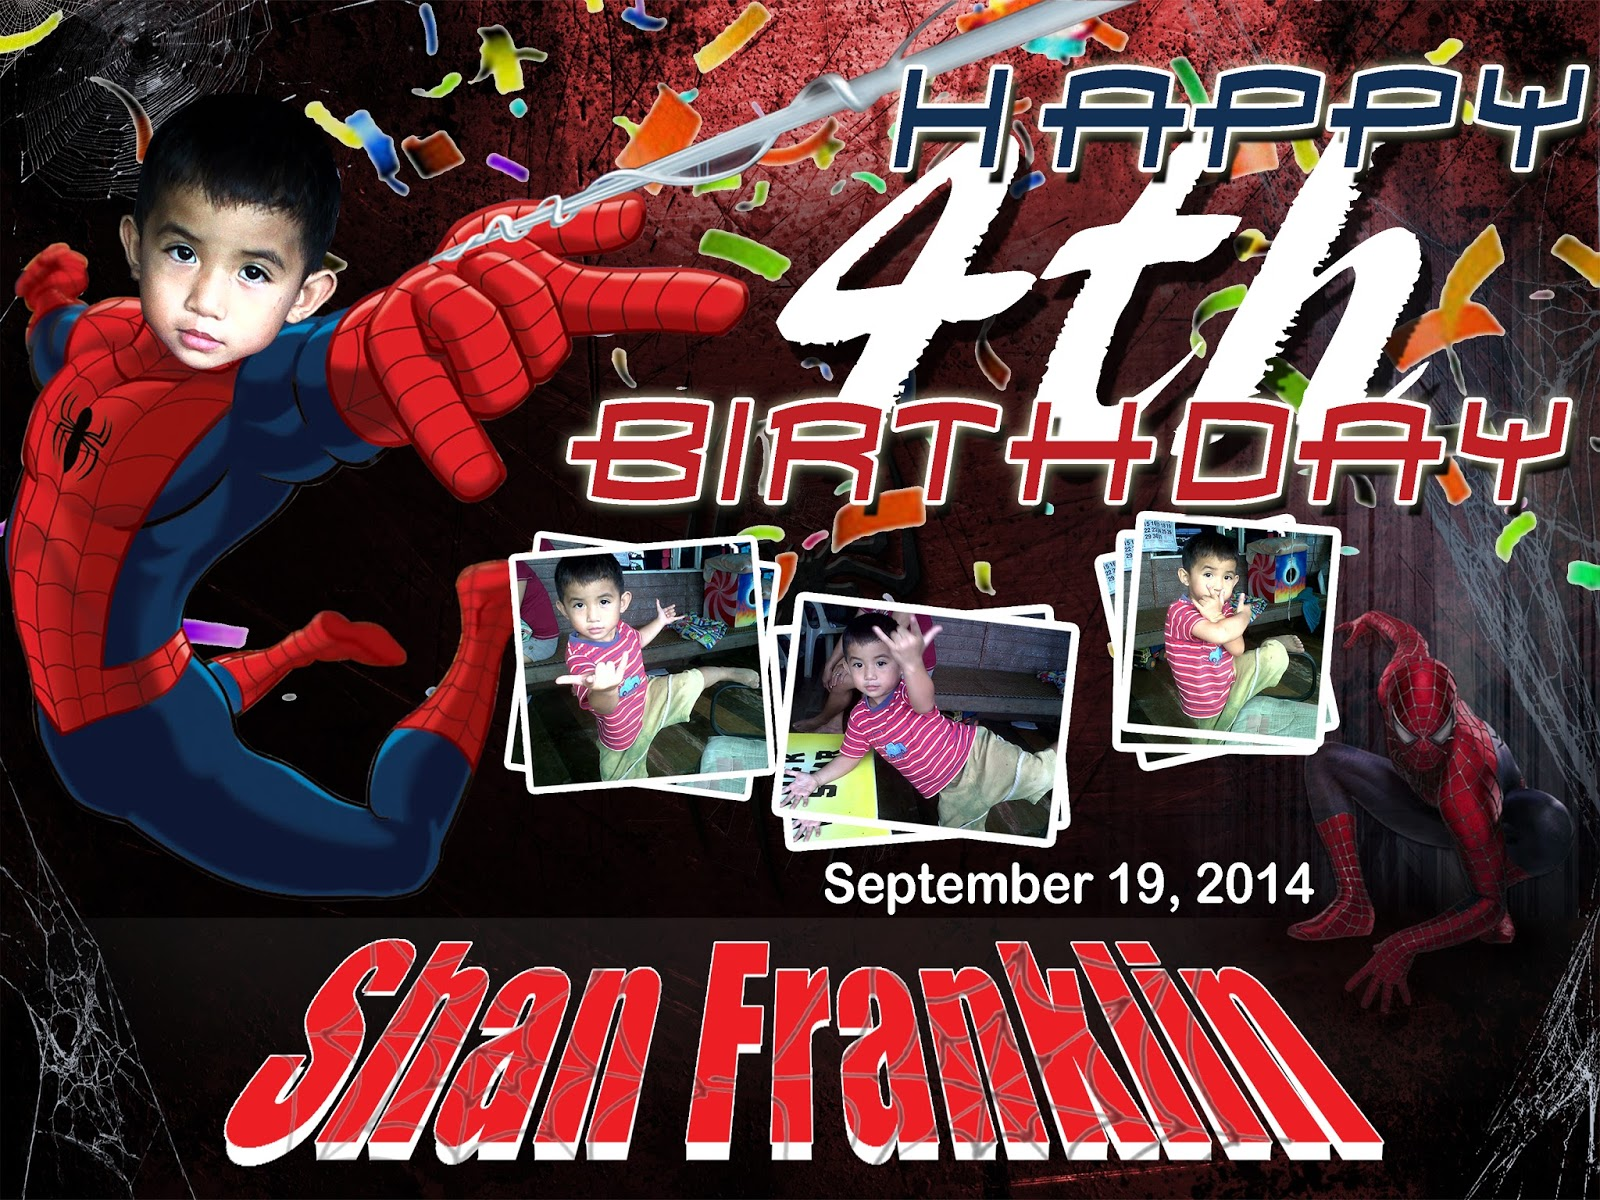 spiderman birthday wallpaper ; spiderman